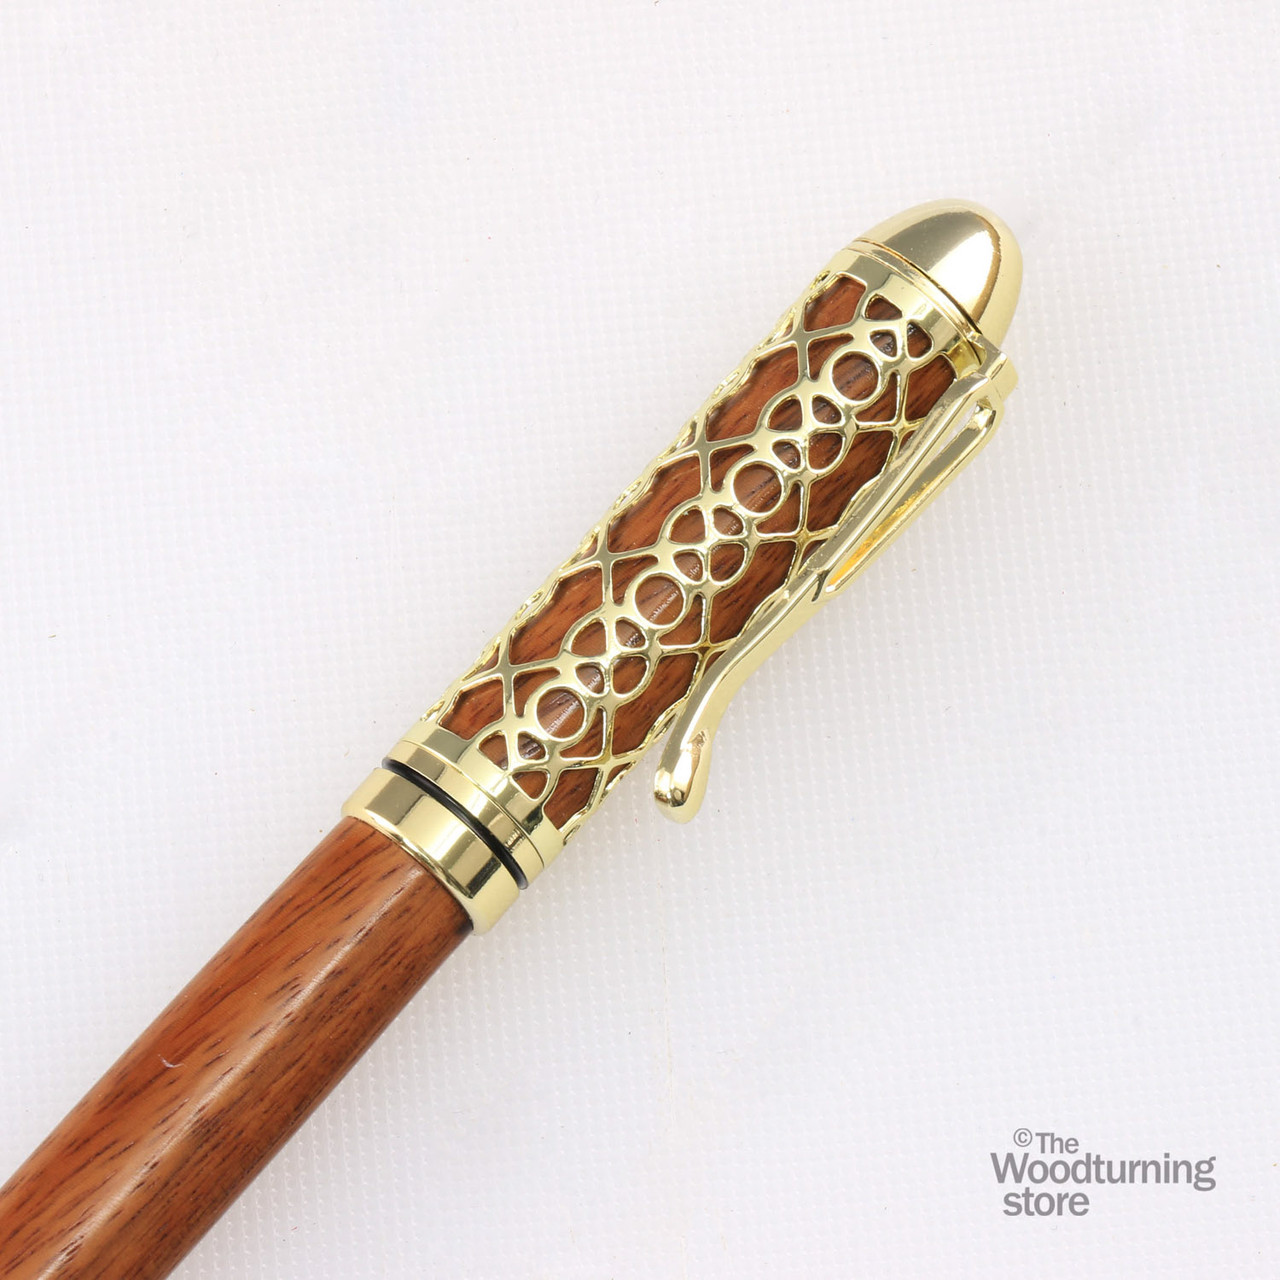 European style pen with filigree backing